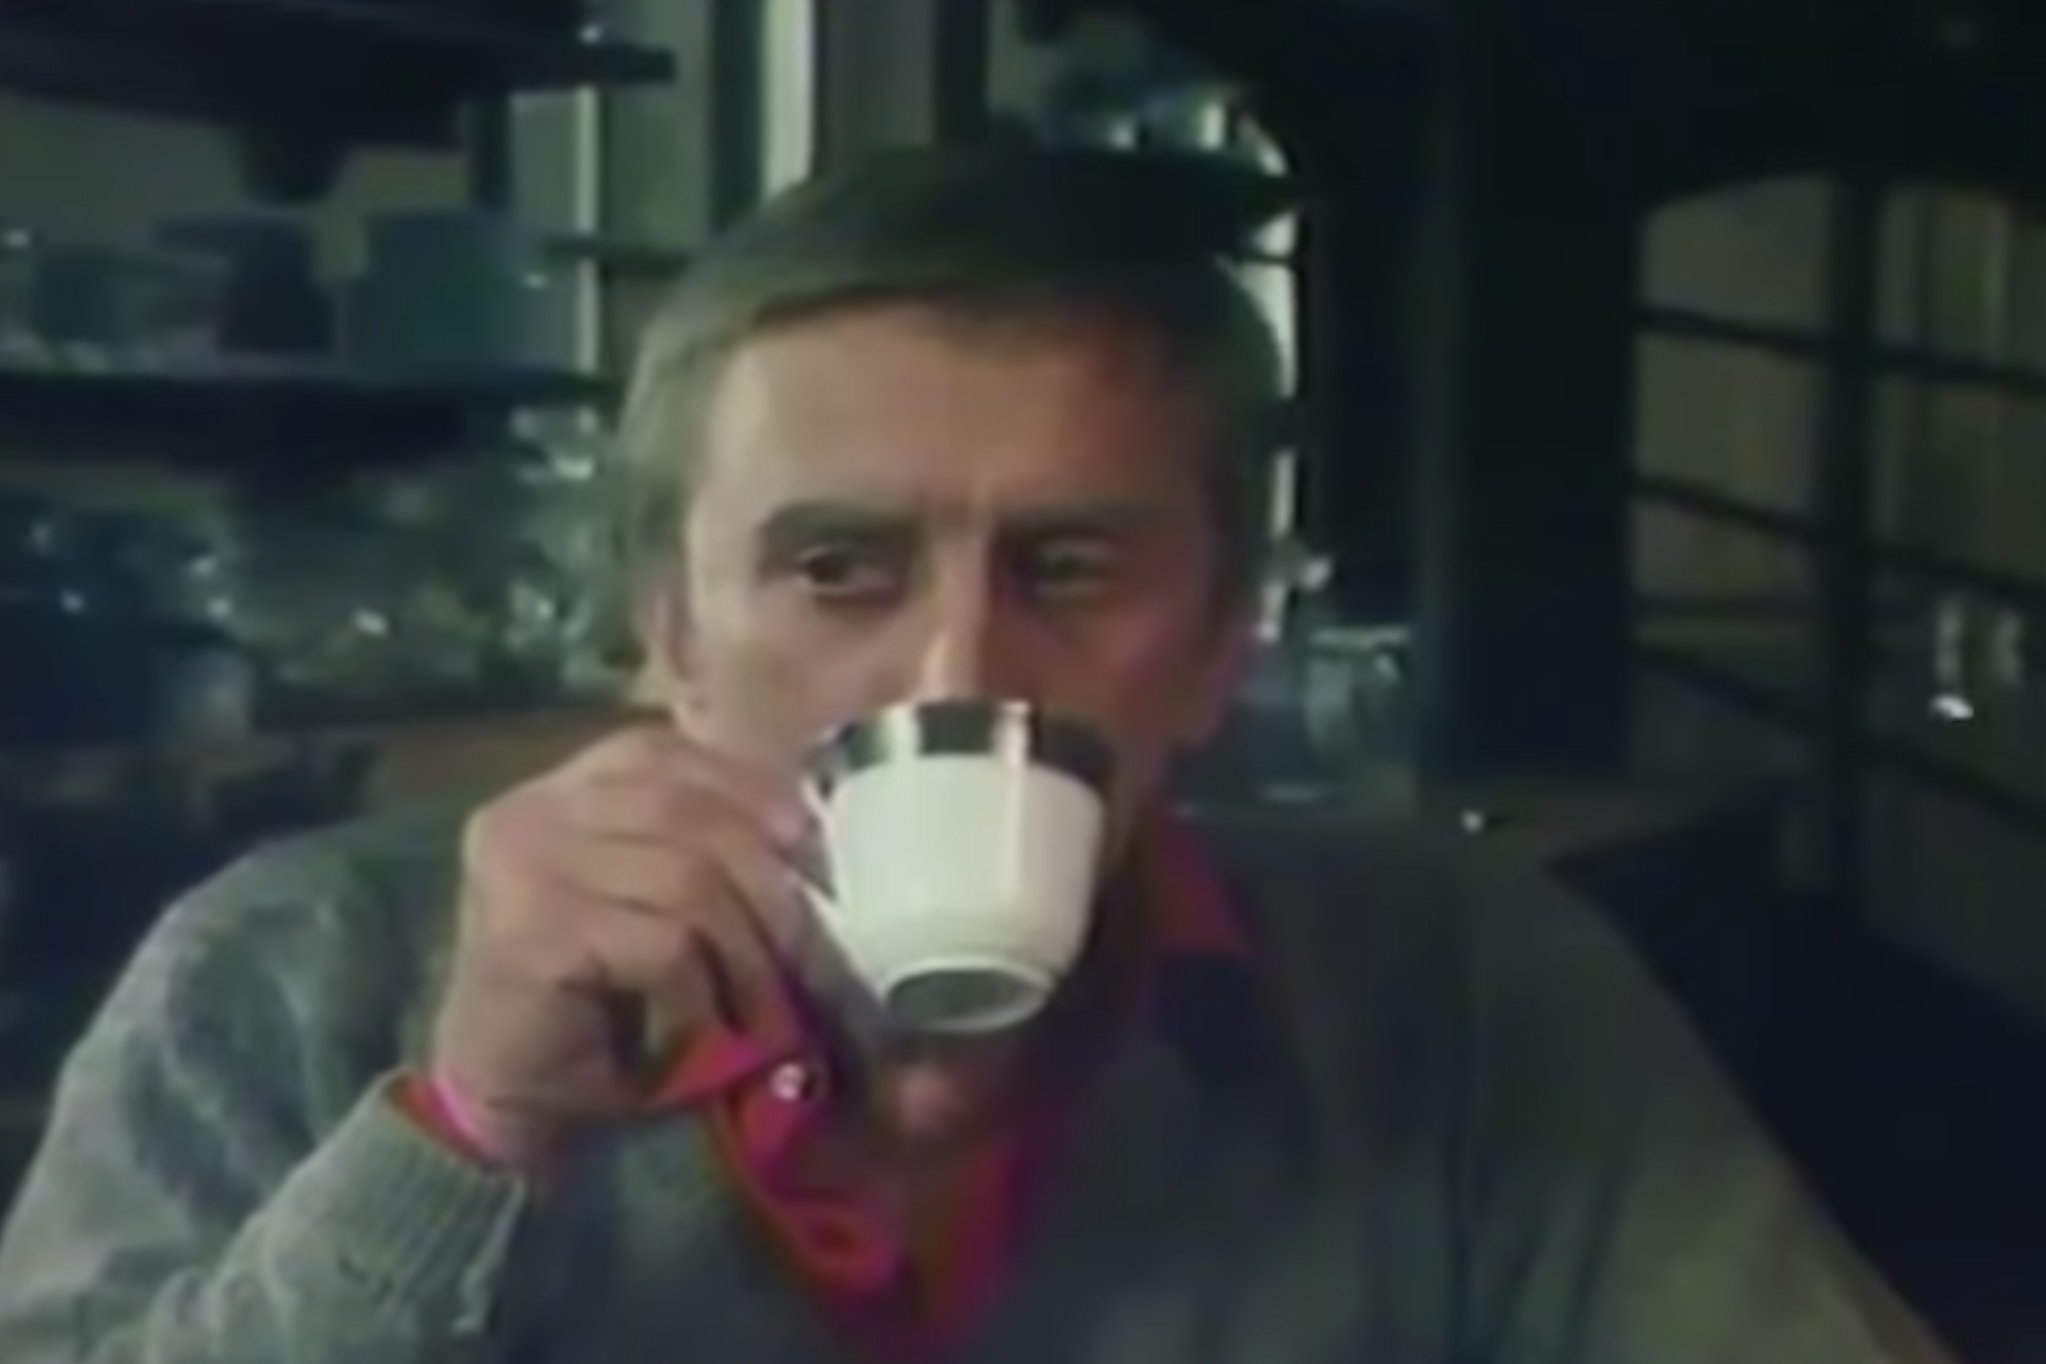 The late, great Kirk Douglas acted in commercials, too